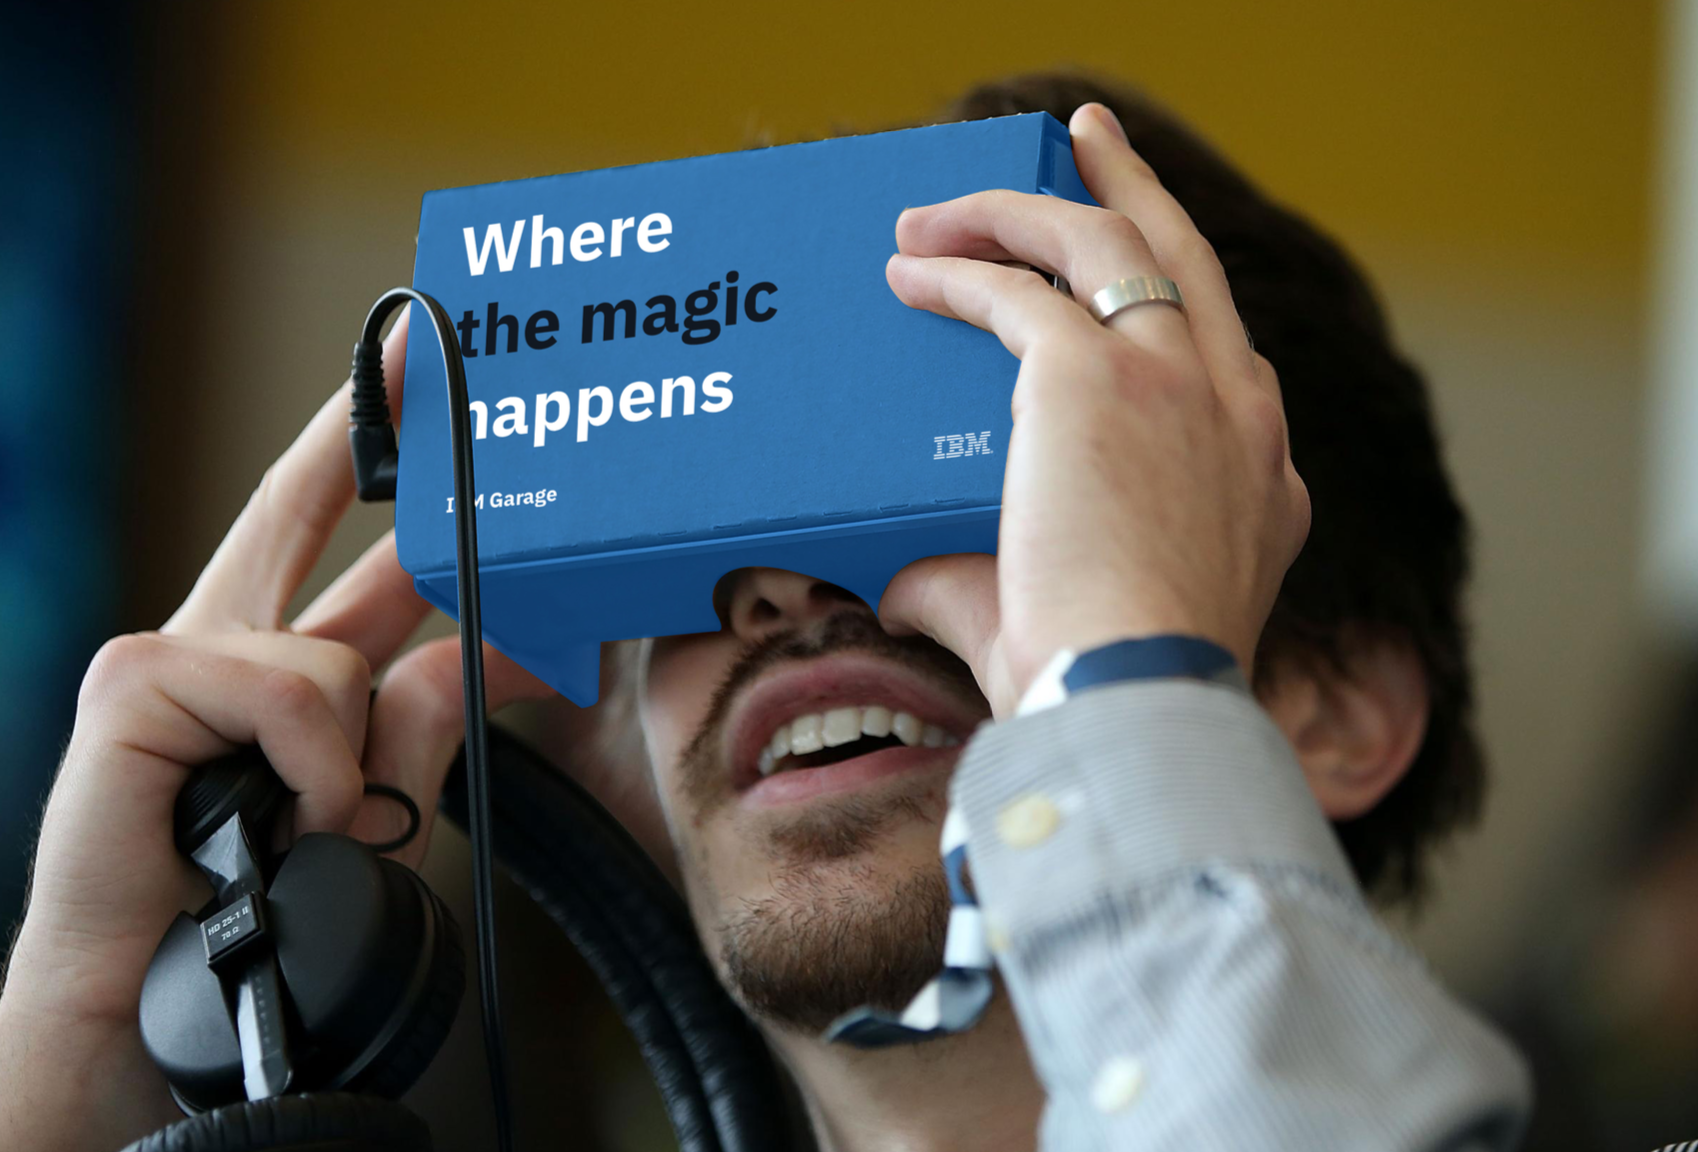 Headset2.png